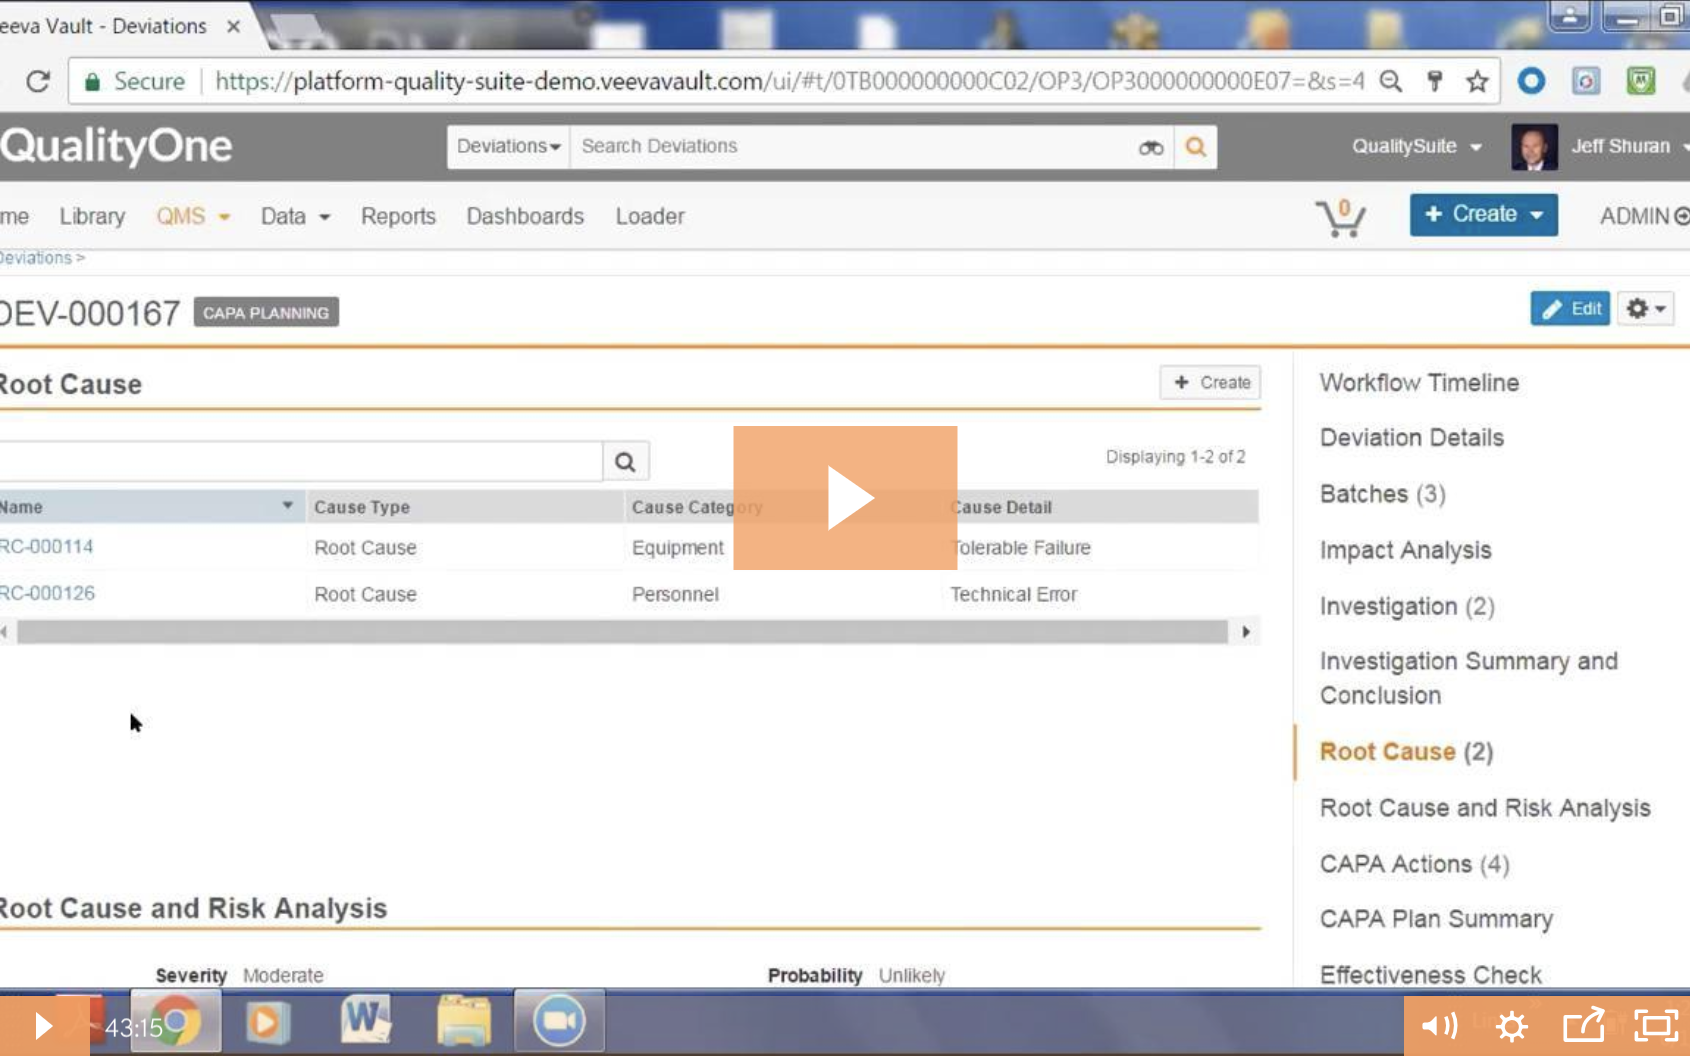 Transform Your Supplier Quality Management with Veeva QualityOne